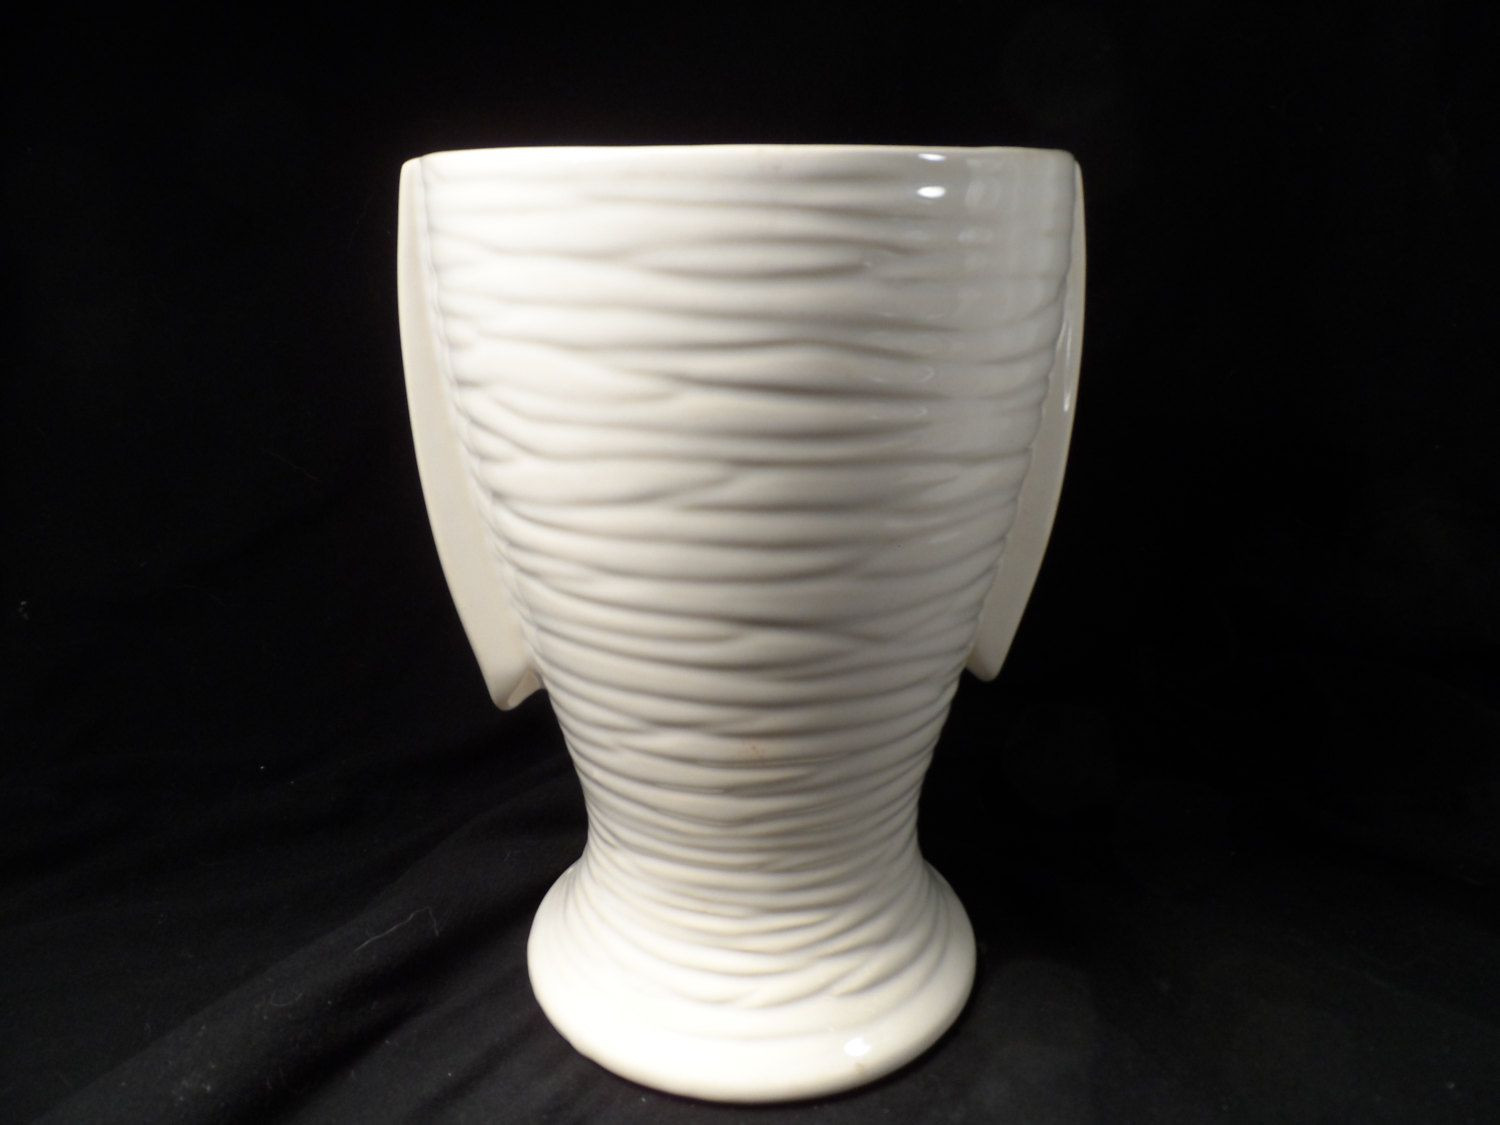 Hull Art Usa Vase Of Vintage Vase Scares Mccoy Usa Vase 1940s Art Deco Two Handle Ivory Intended for Vintage Vase Scares Mccoy Usa Vase 1940s Art Deco Two Handle Ivory Matt Glaze Finish Tall White Pottery Vase